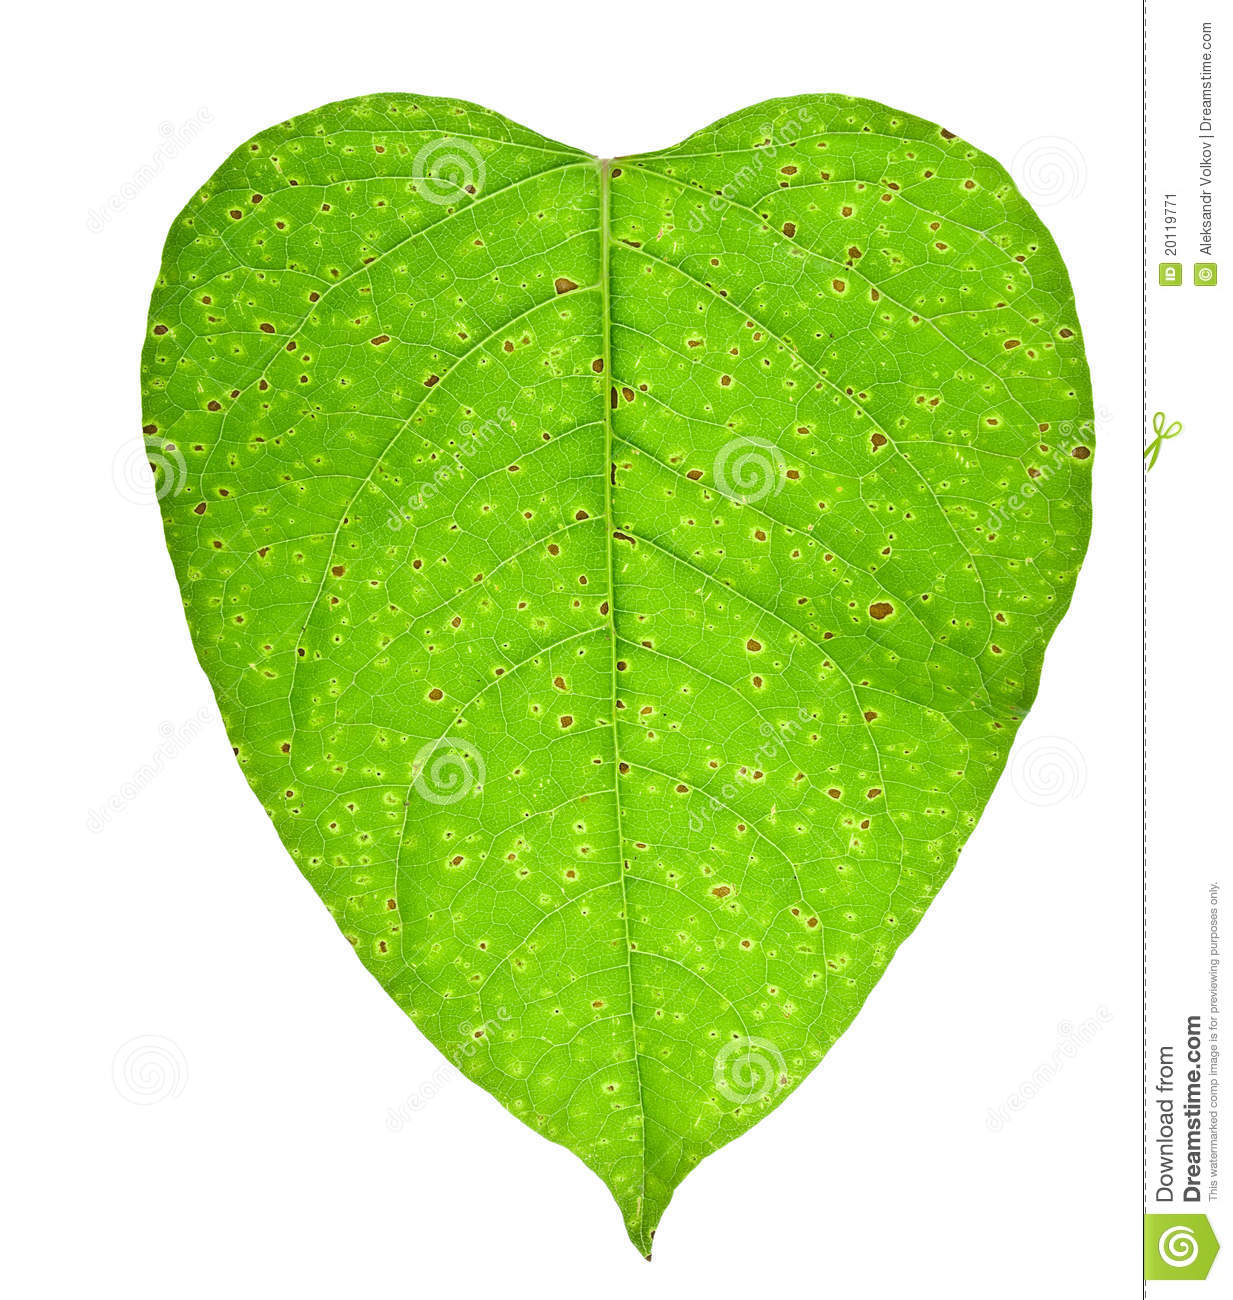 Heart With Blood Clots Of Vessels Concept  Sick Green Leaf Of A Plant